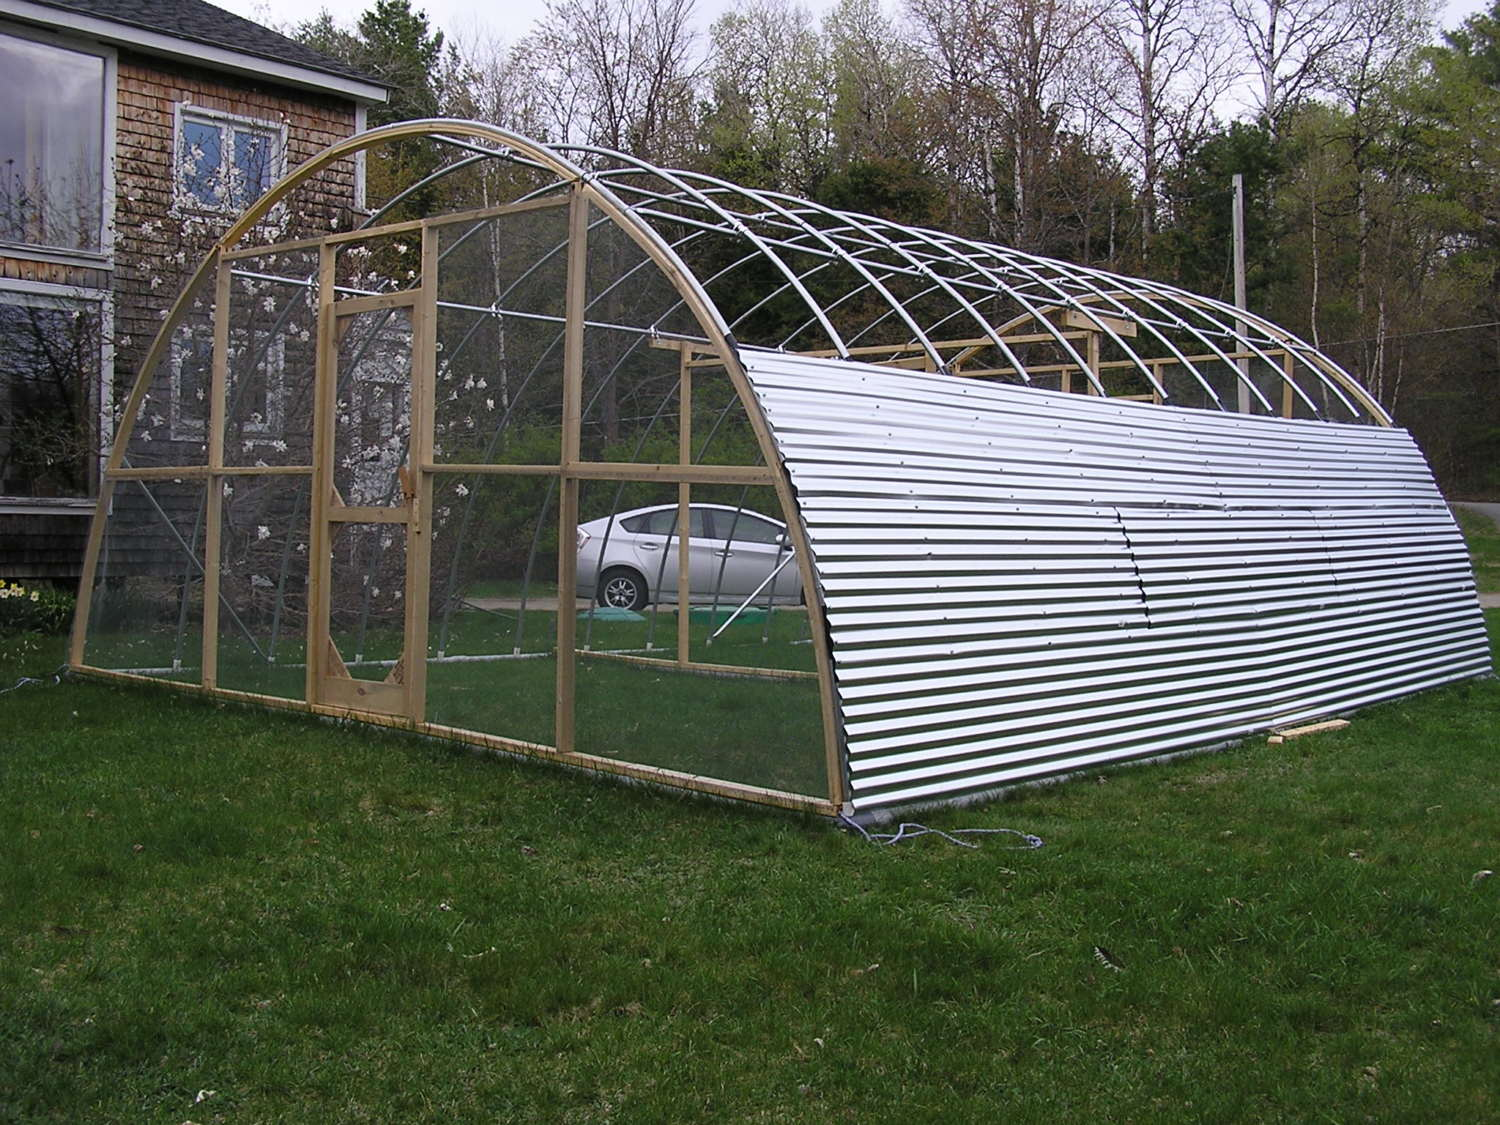 Citaten Hoop House : Our hoop house chicken tractor page